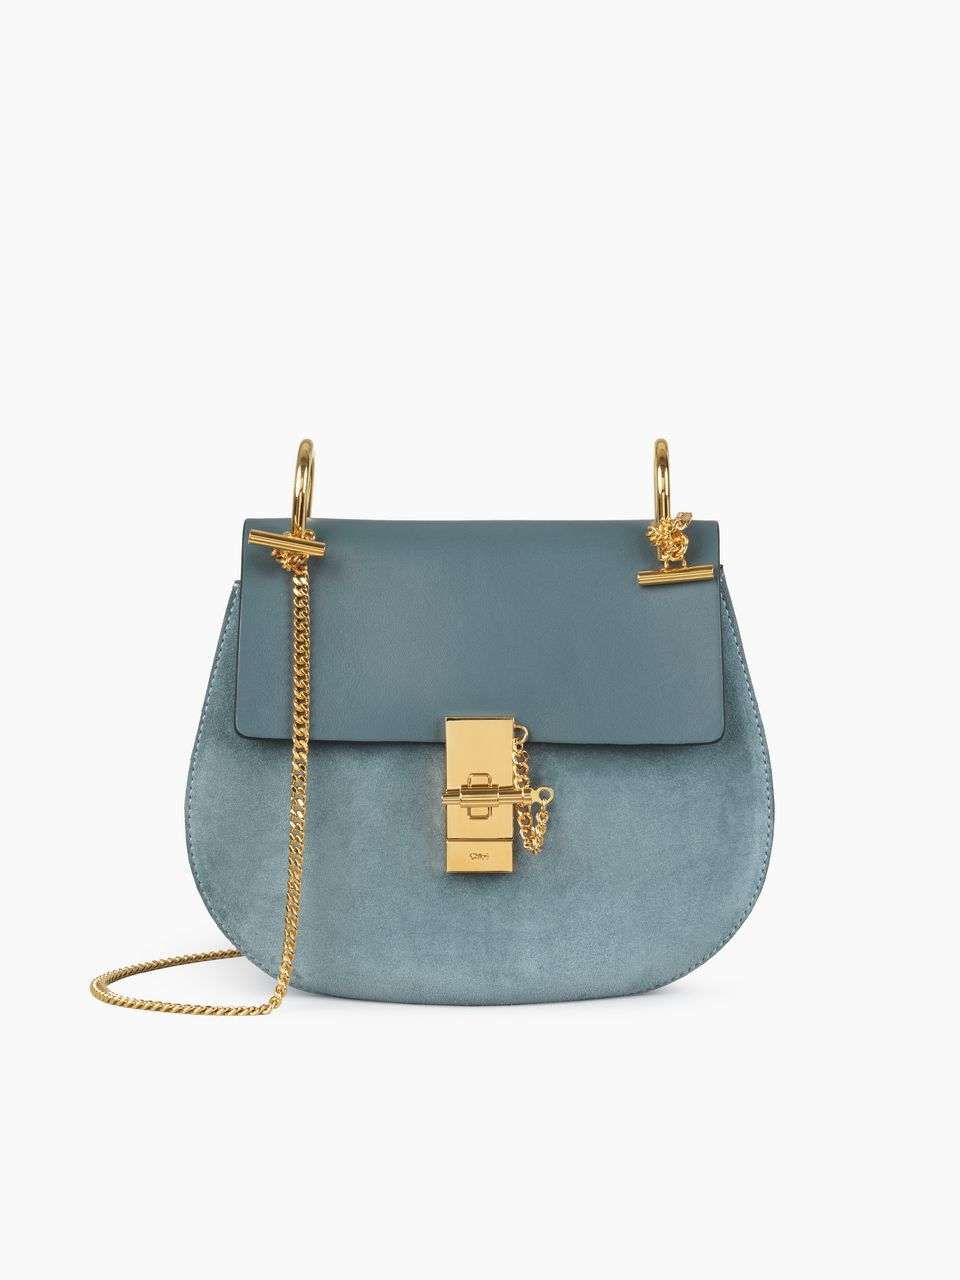 b1f53eb4d3 Chloe Drew Shoulder Bag in cloudy blue and smooth & suede calfskin ...